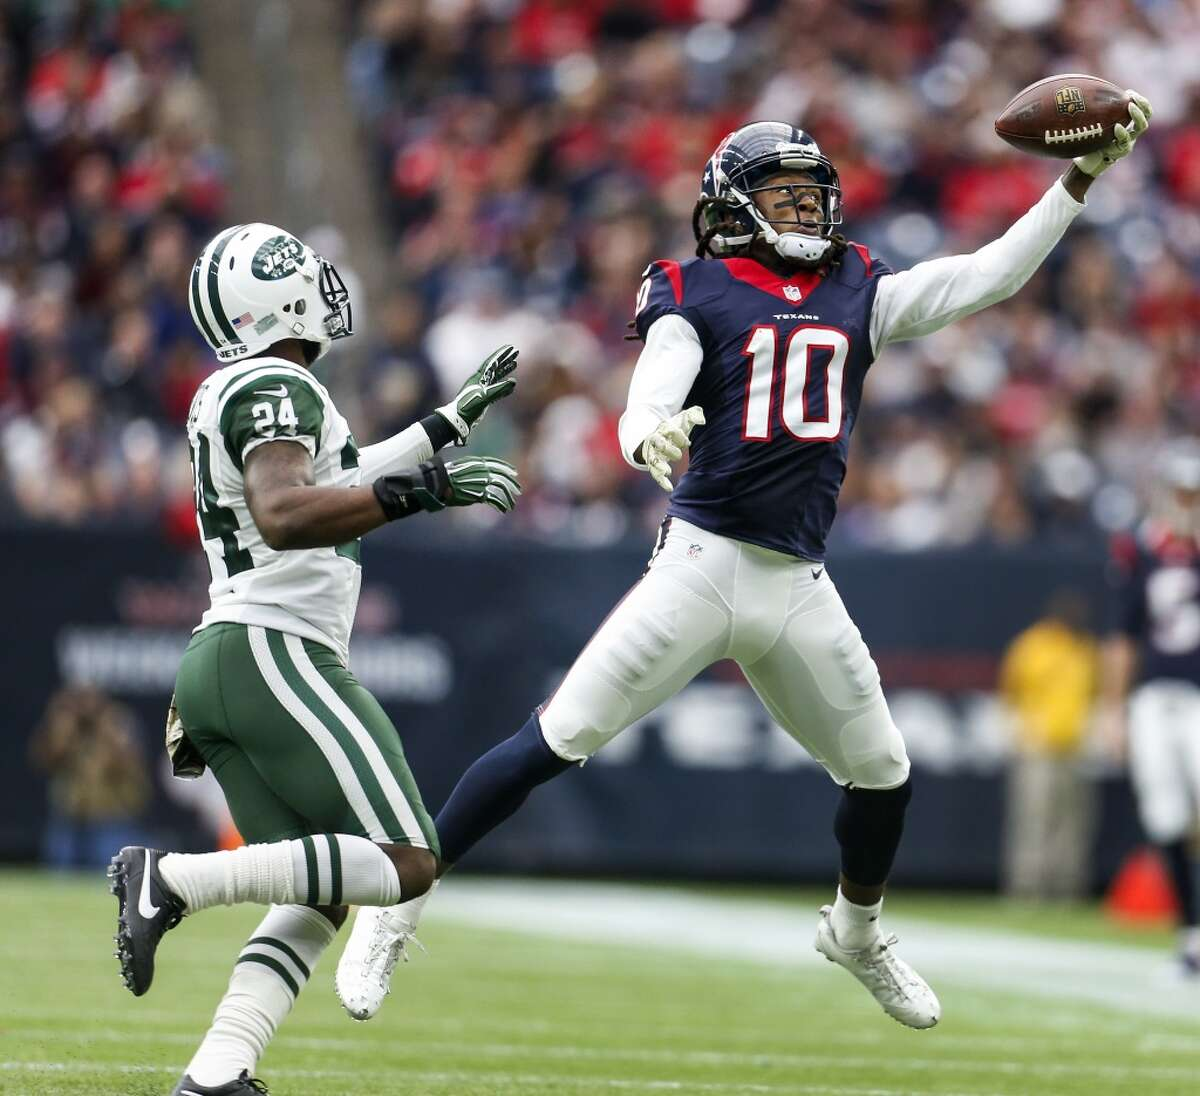 Houston Texans wide receiver DeAndre Hopkins (10) reaches up to catch a pass during the second quarter of an NFL football game at NRG Stadium on Sunday, Nov. 22, 2015, in Houston. ( Karen Warren / Houston Chronicle )